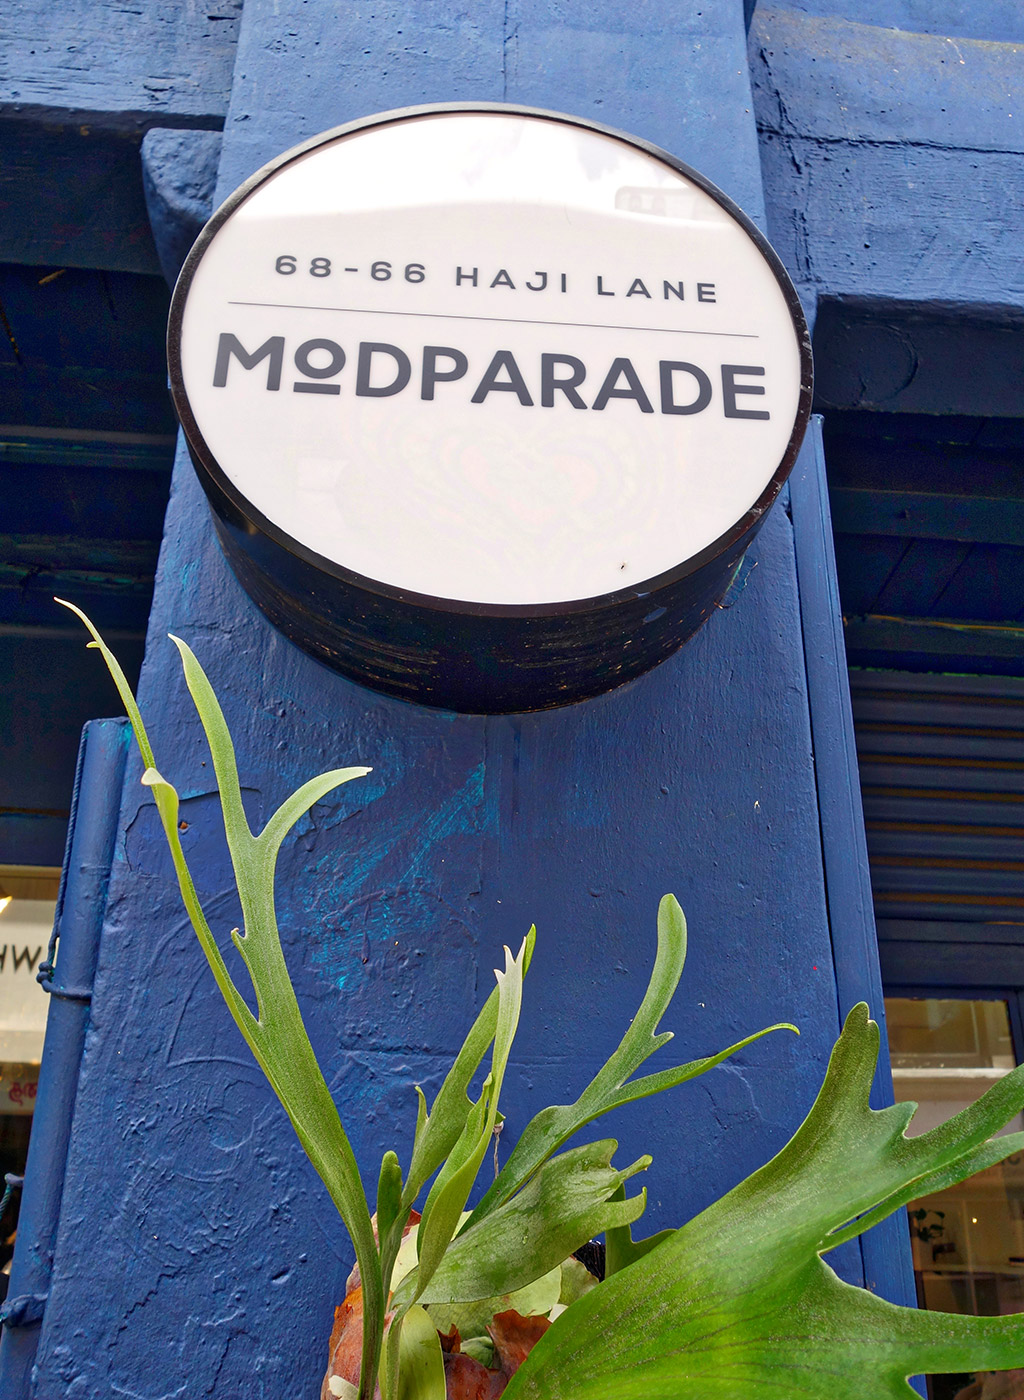 starting-with-a-singapore-haji-lane-modparade